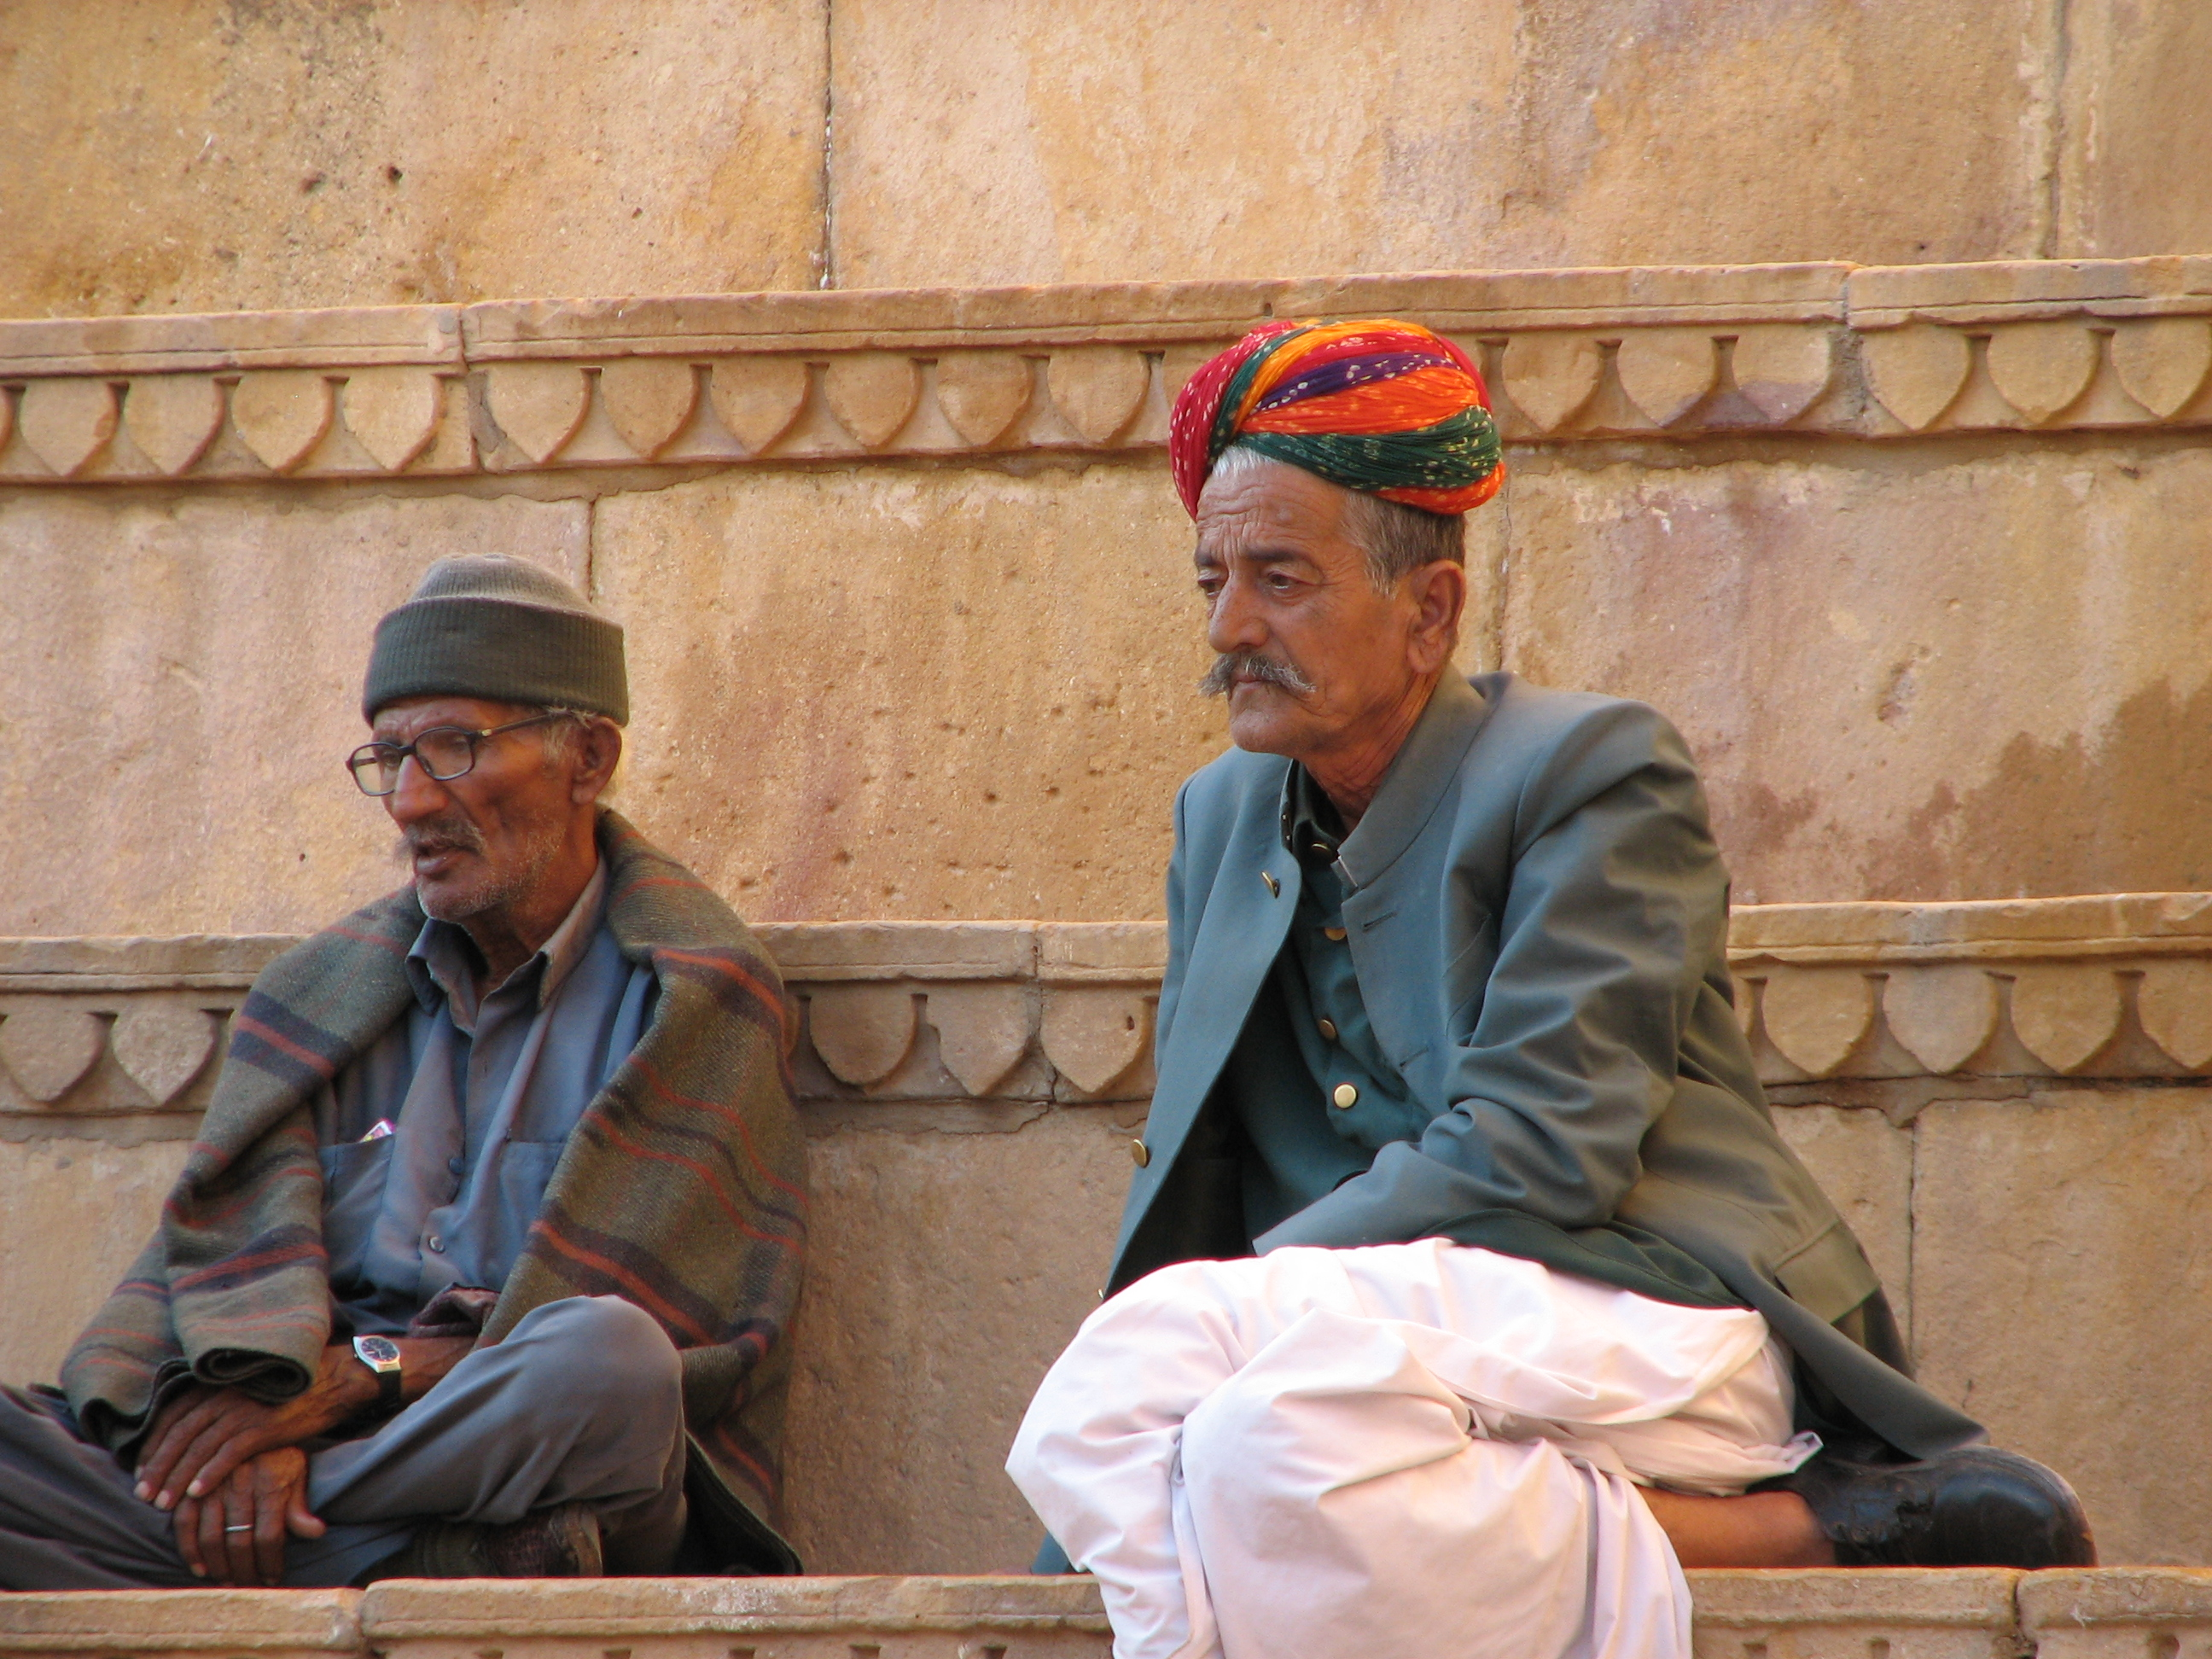 Two men sitting at Jailsalmer Fort, Rajasthan. One is wearing an orange, red and green traditional Rajasthani turban while the other person is wearing a regular woolen hat. copyright 2006 David Magier